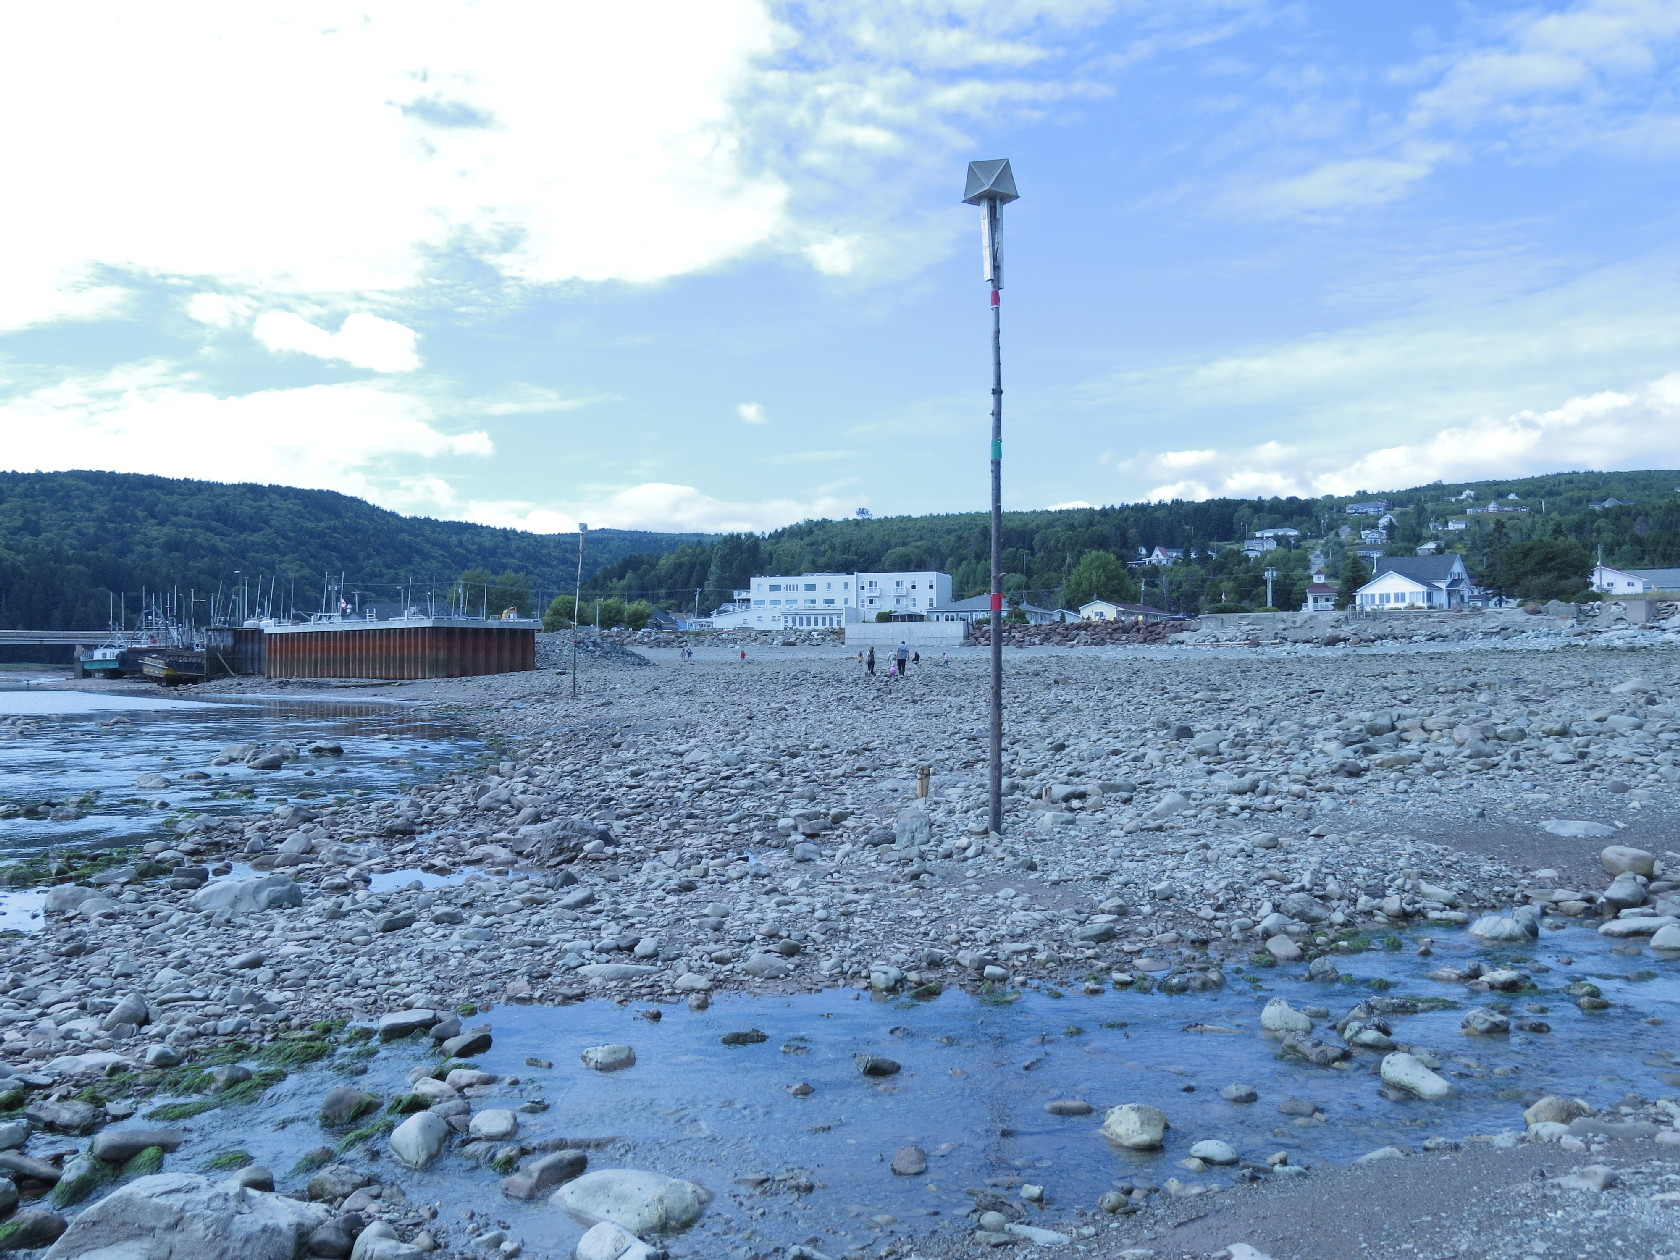 Tidal pole fully exposed at low tide, Alma, NB